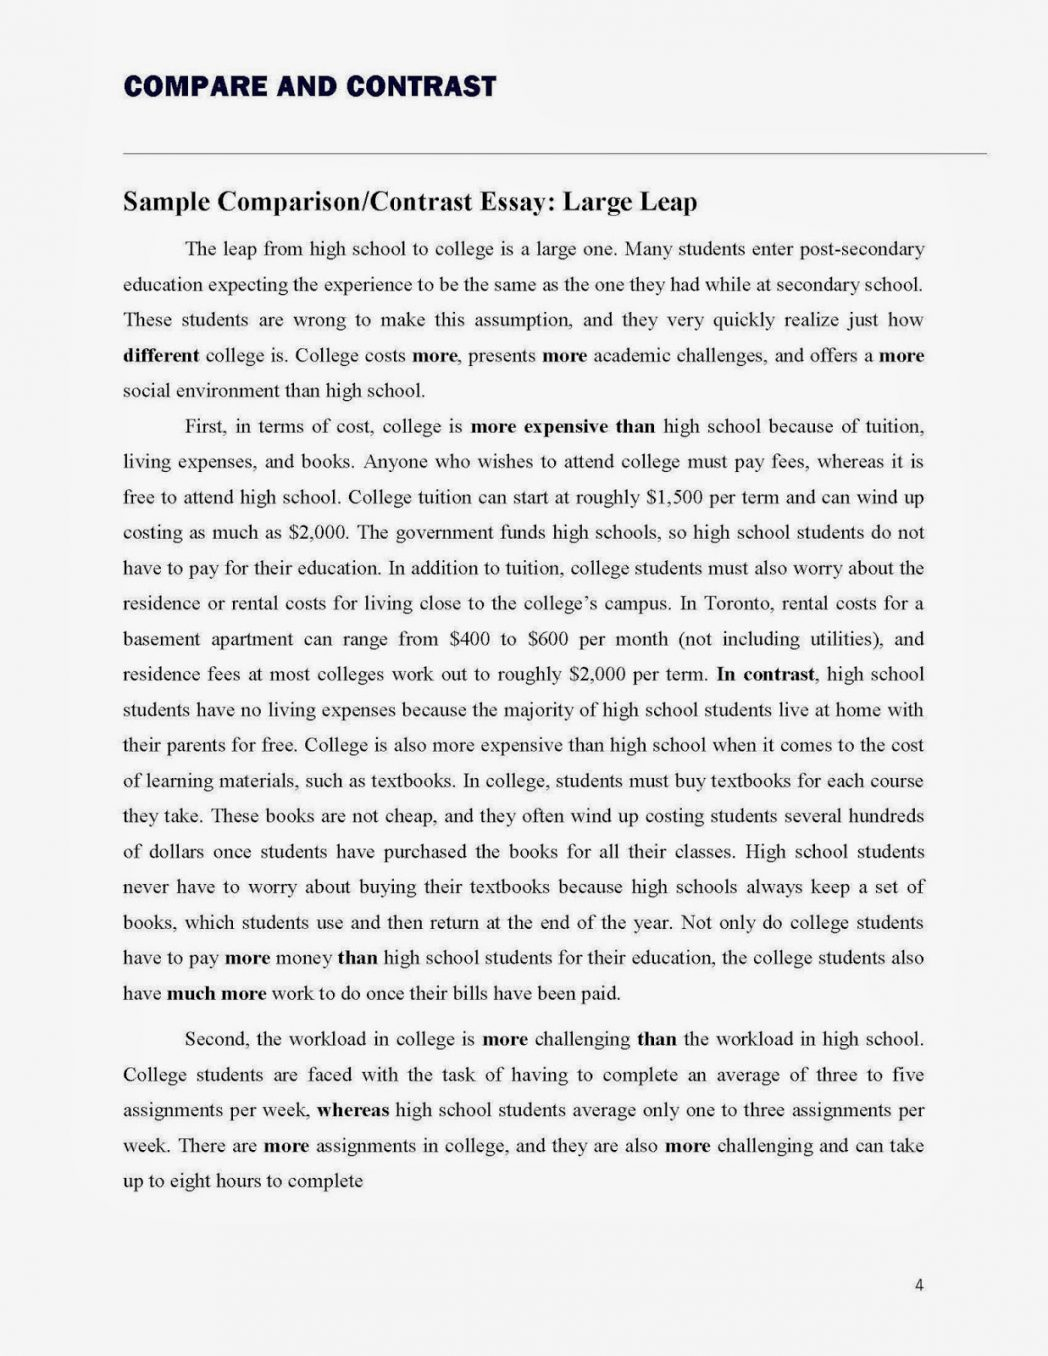 005 Compare And Contrast Essay Examples College Example Comparison That W Application Worked Phenomenal Outline For Students Introduction Paragraph Full